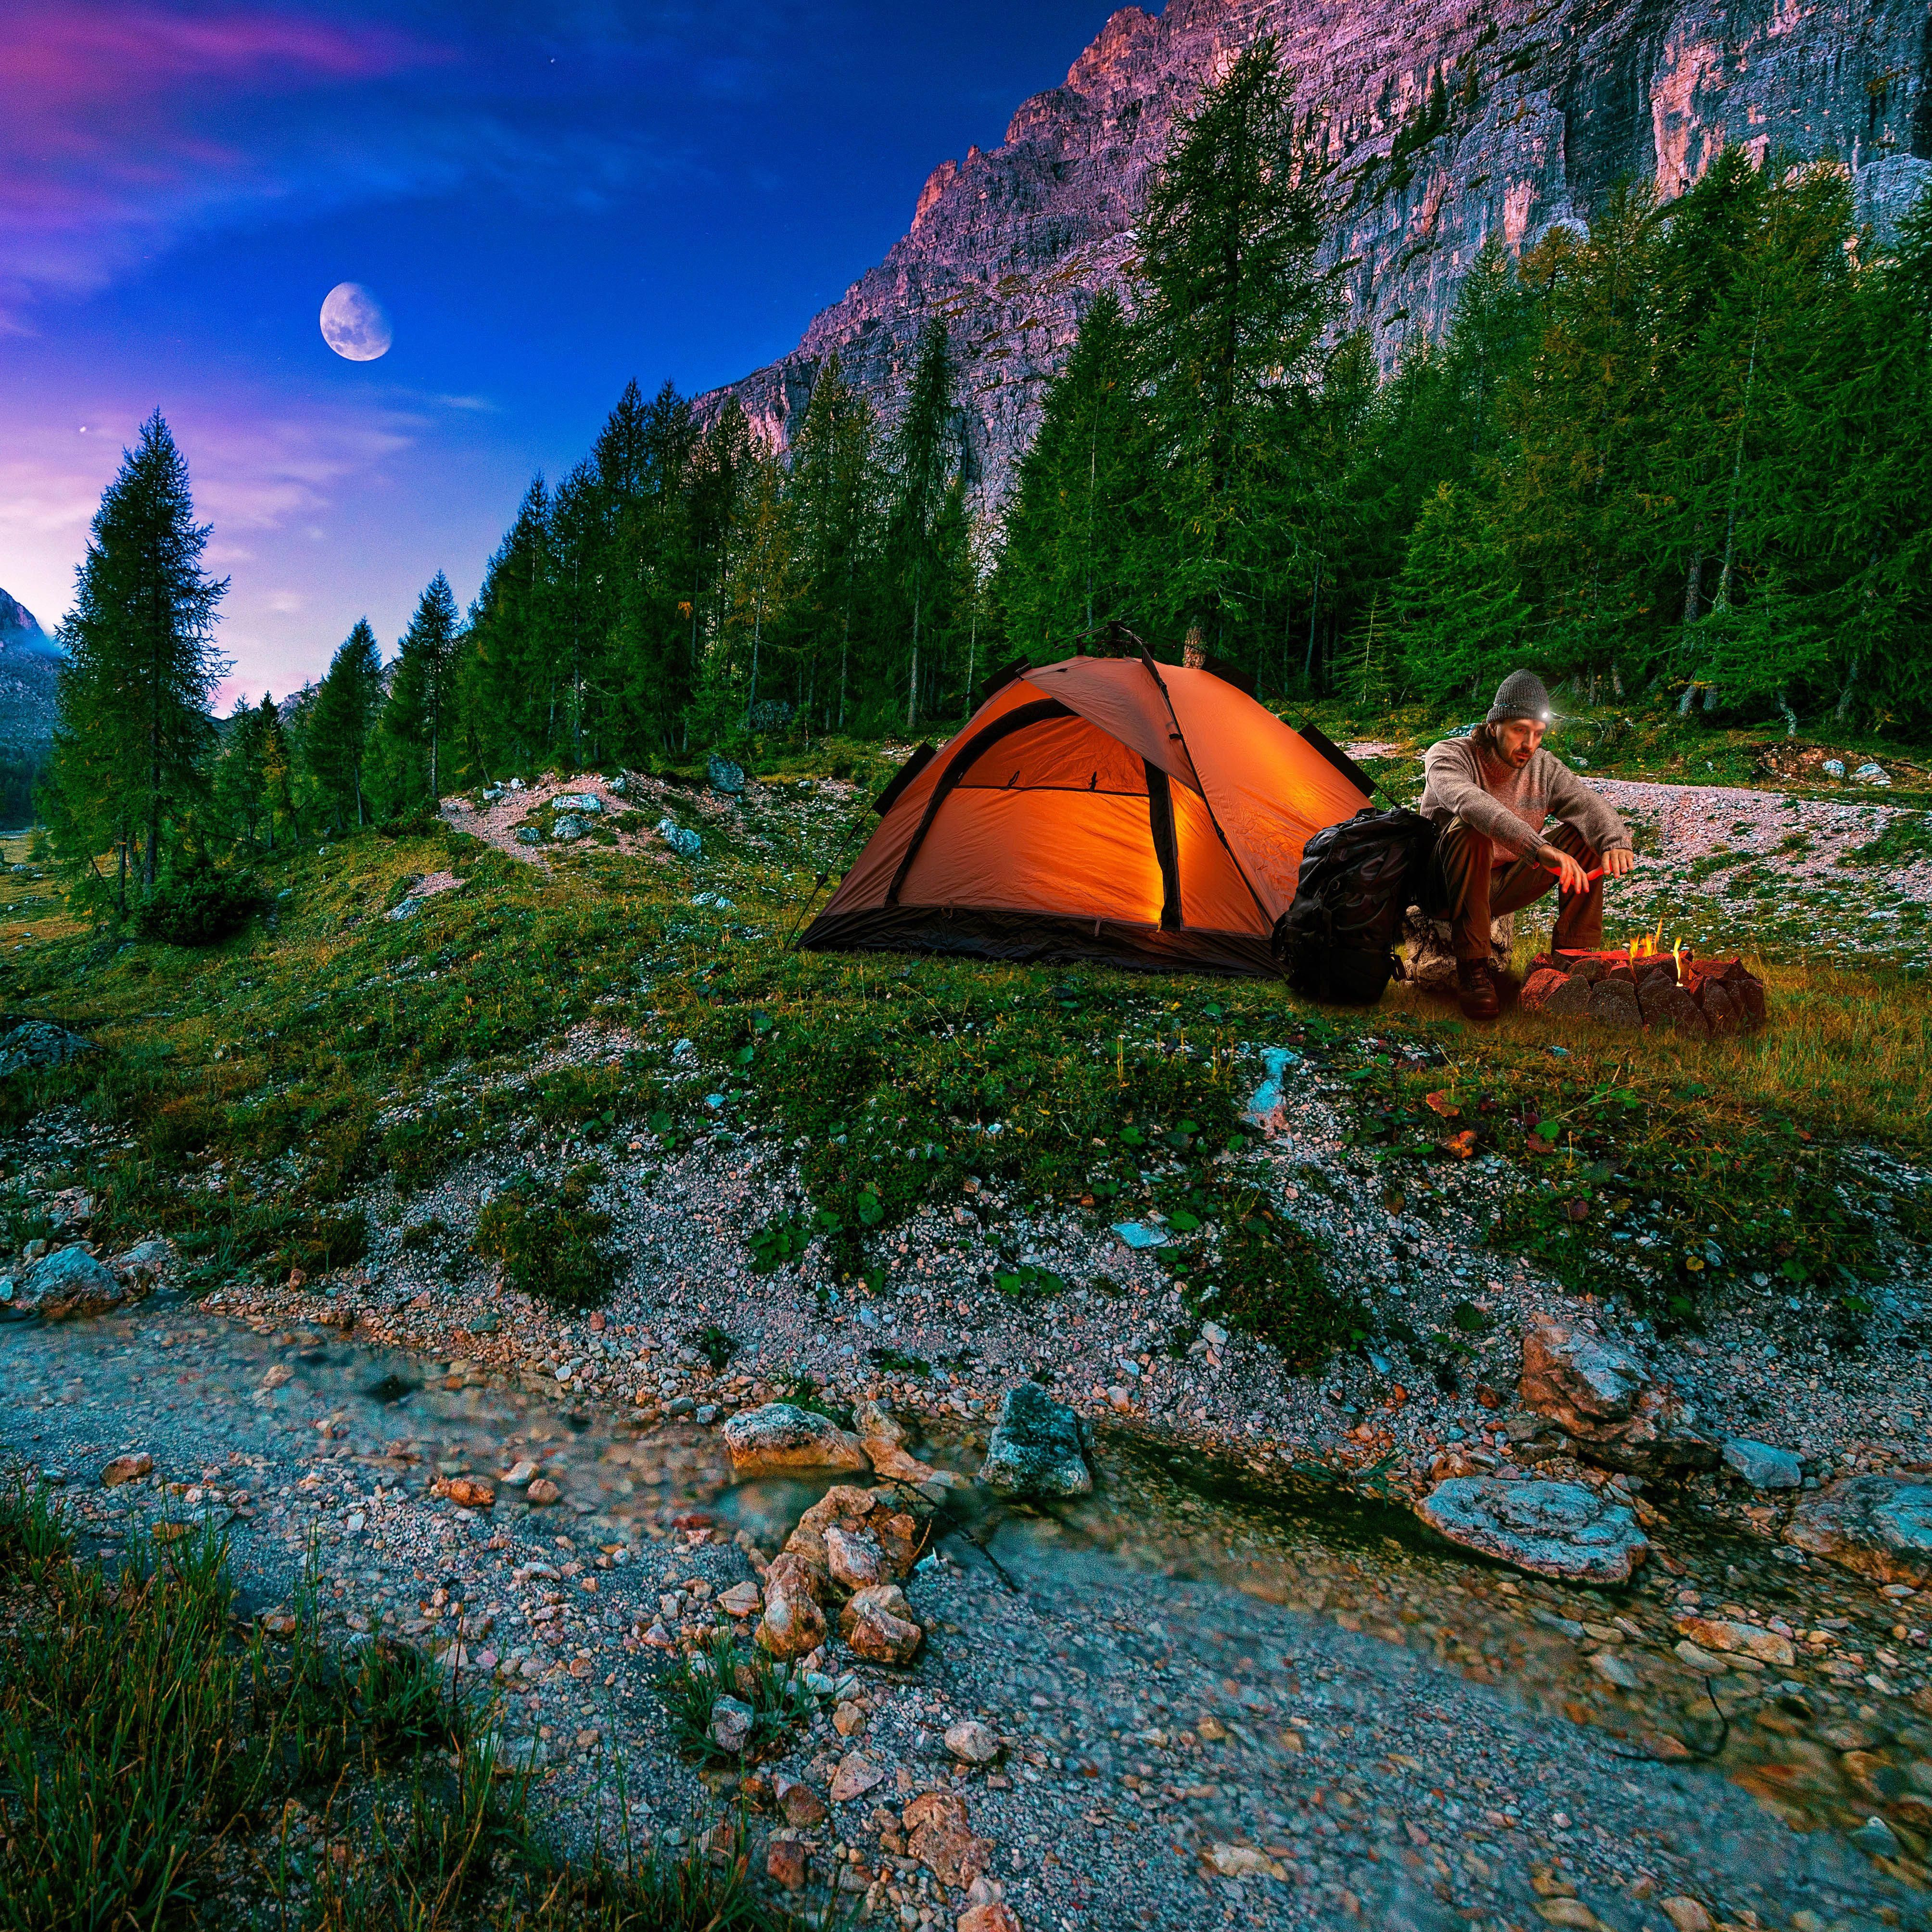 Who wouldnâ t want to travel here?!rn Outdoors adventure